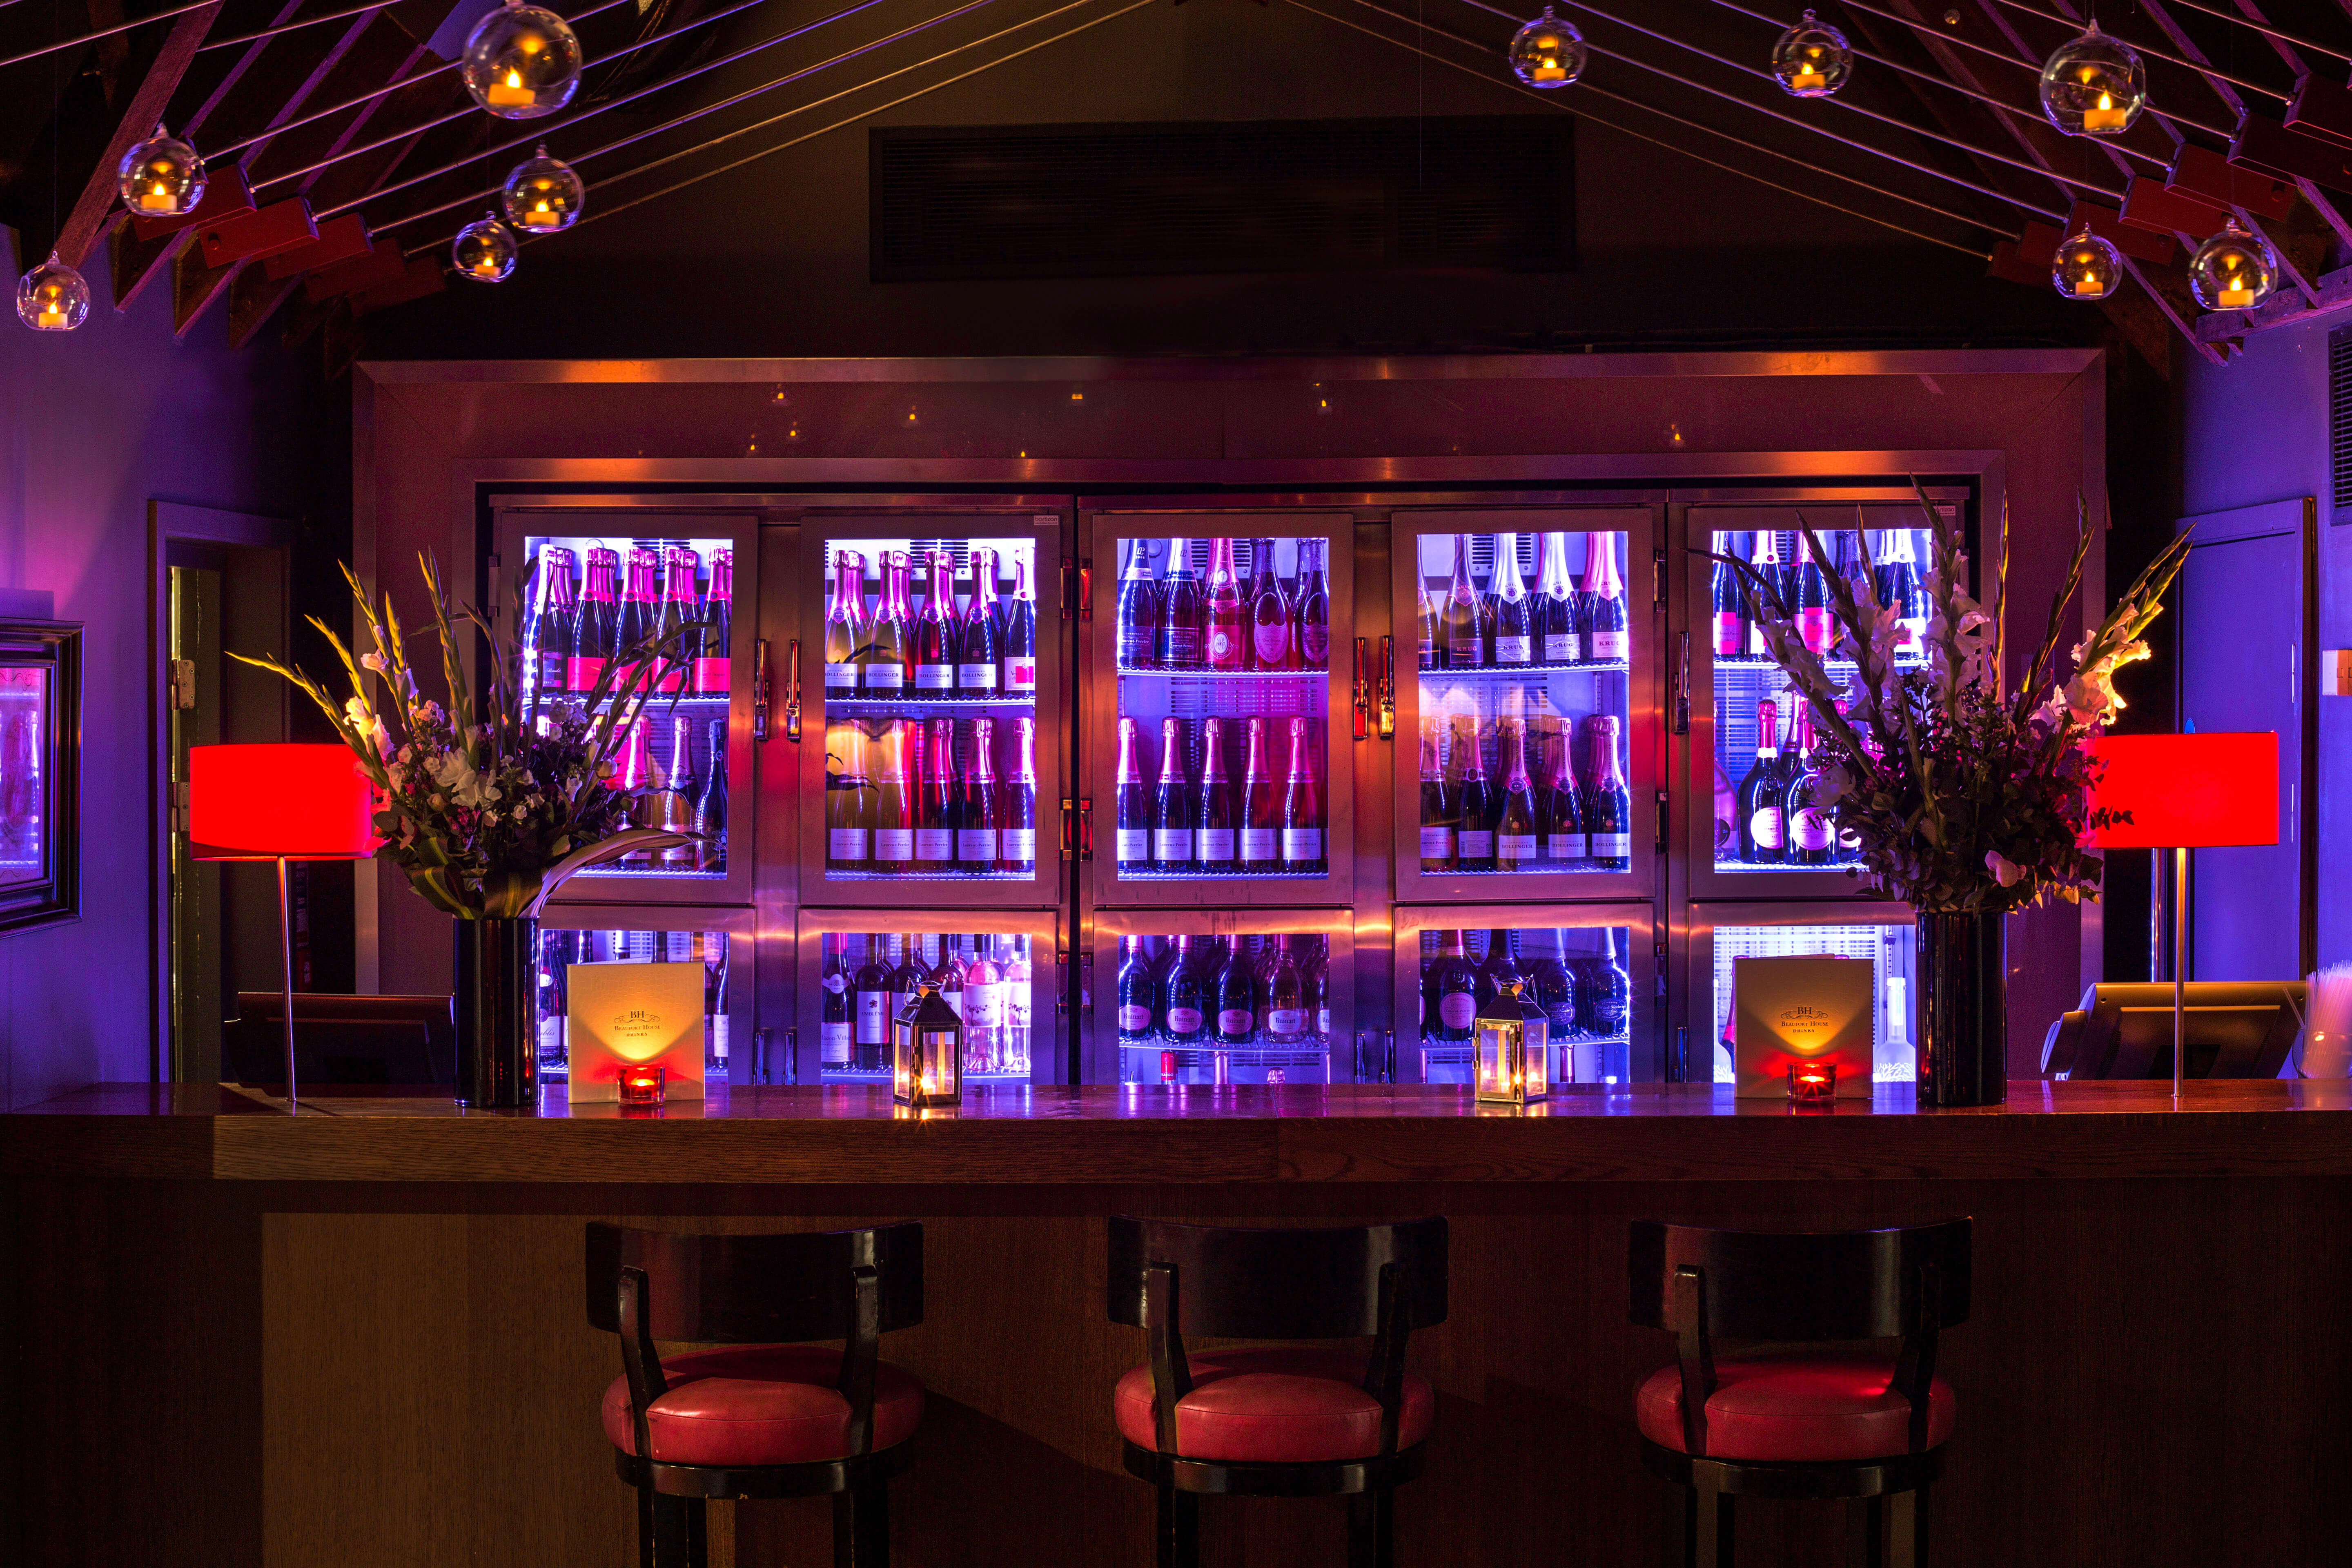 Champagne bar private members club london beaufort house - Pictures of bars ...